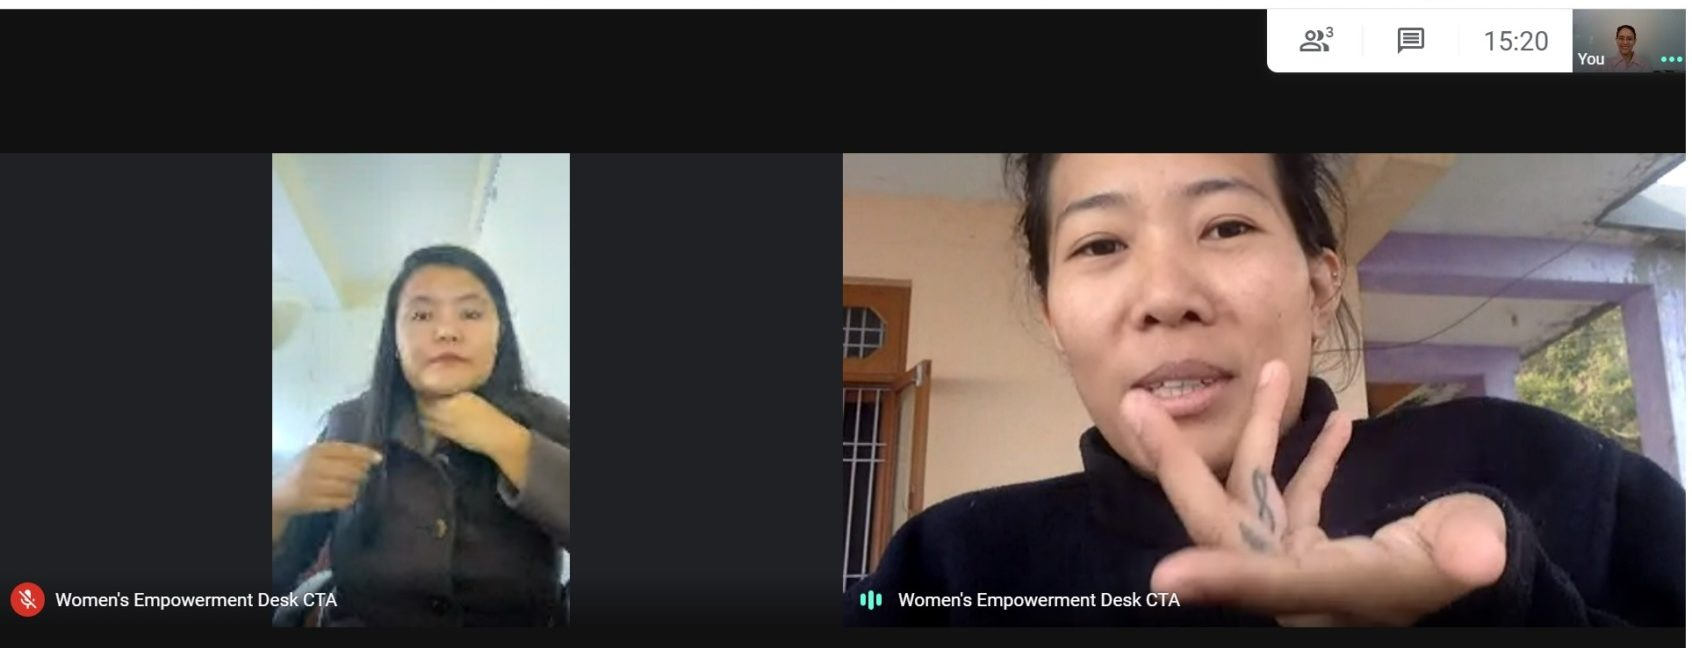 Shivangi on a video call with two female members of the Women's Empowerment Desk at CTA.